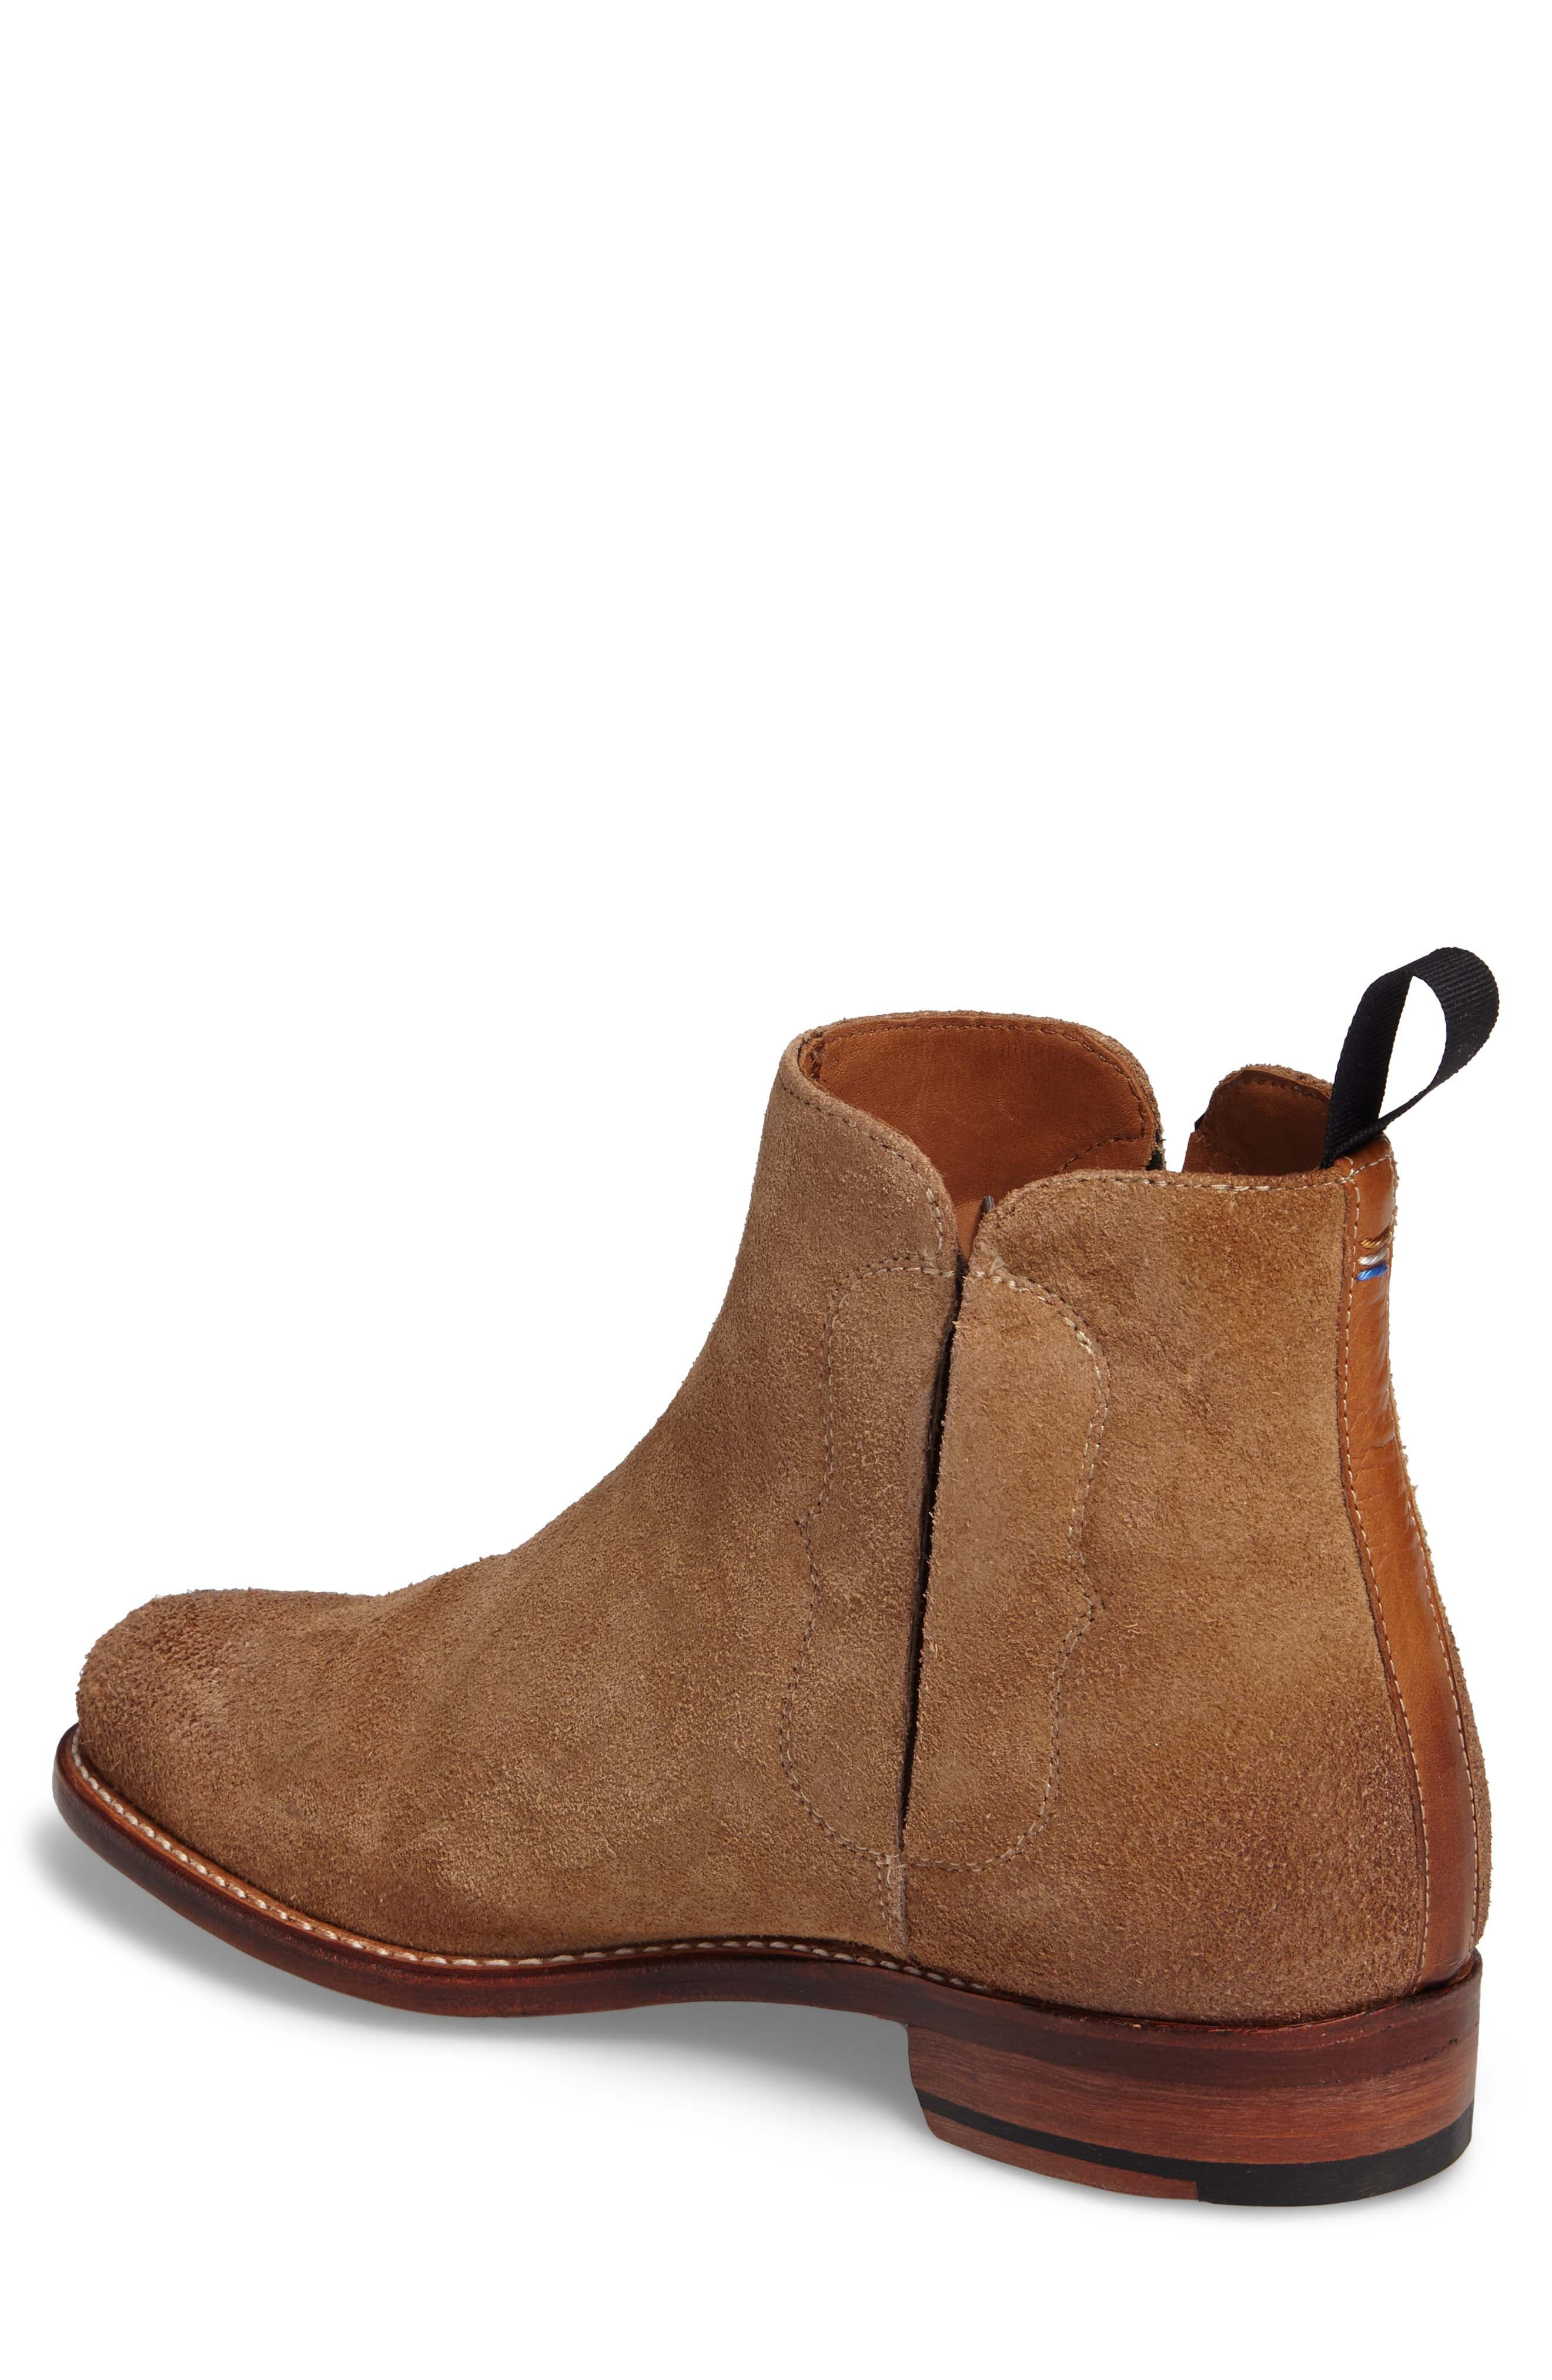 Ariat Maxwell Chelsea Boot,                             Alternate thumbnail 2, color,